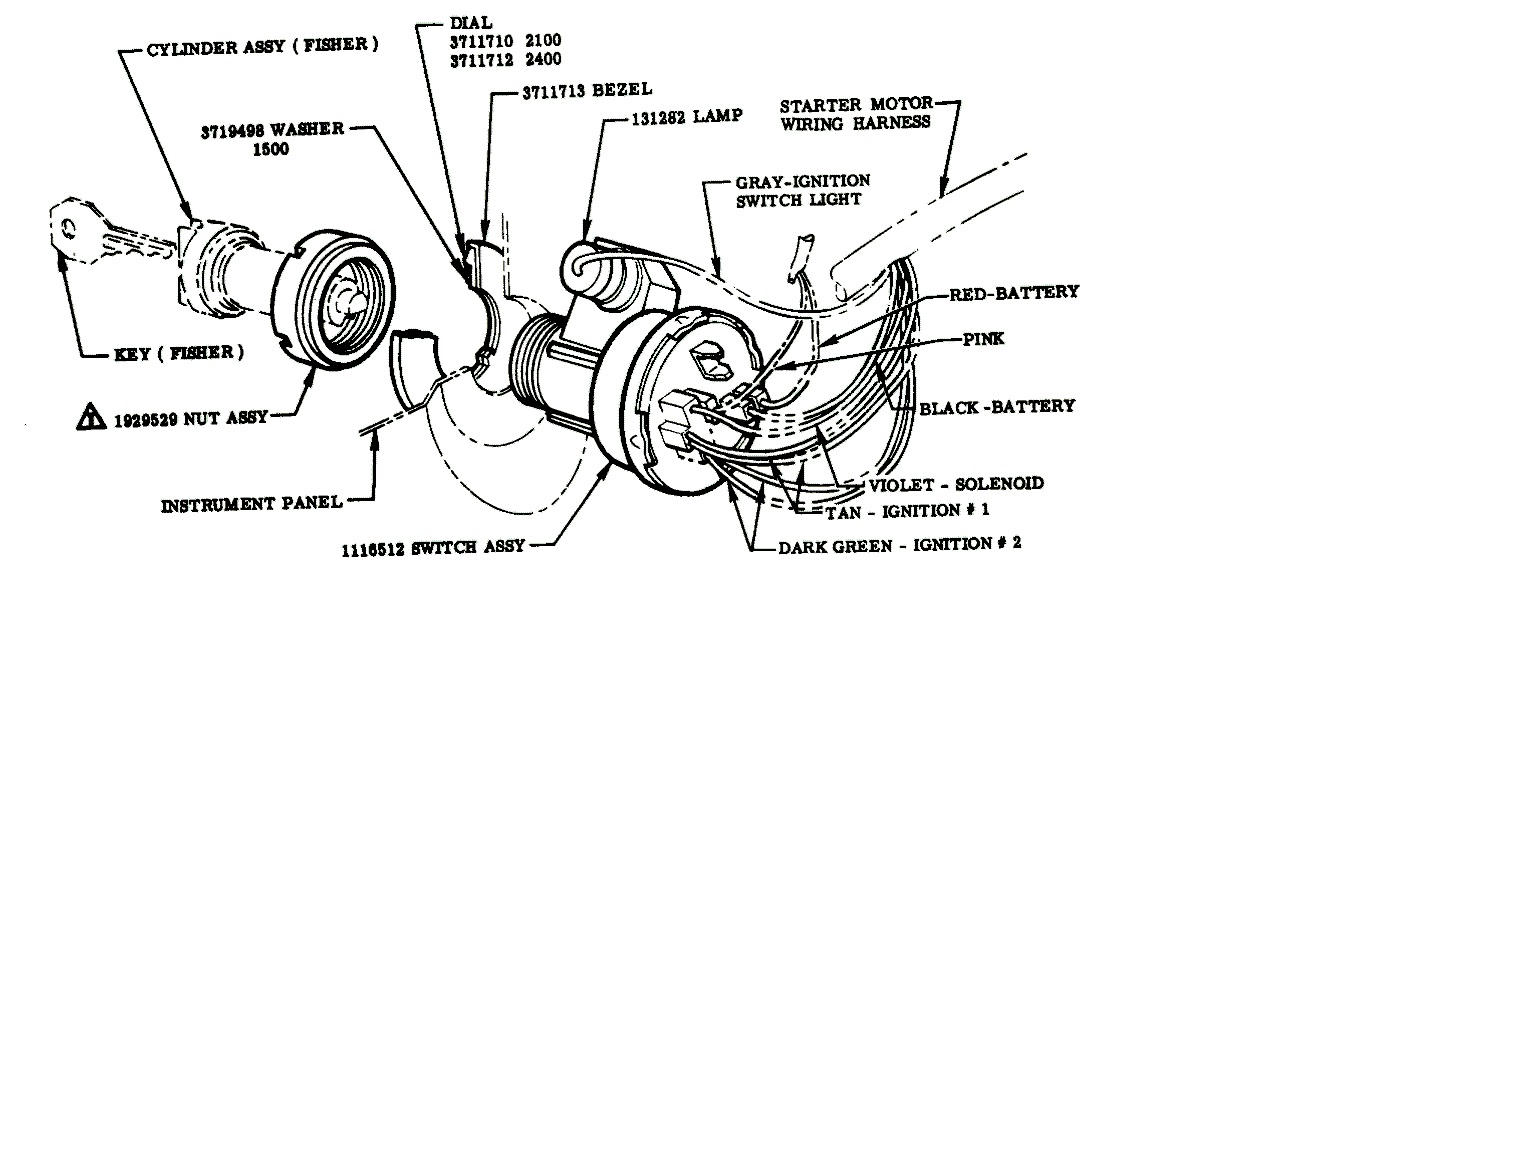 2006 Chevy Cobalt Starter Wiring Diagram Will Be A 2009 Silverado Ignition Technical Switch 1955 2 05 2008